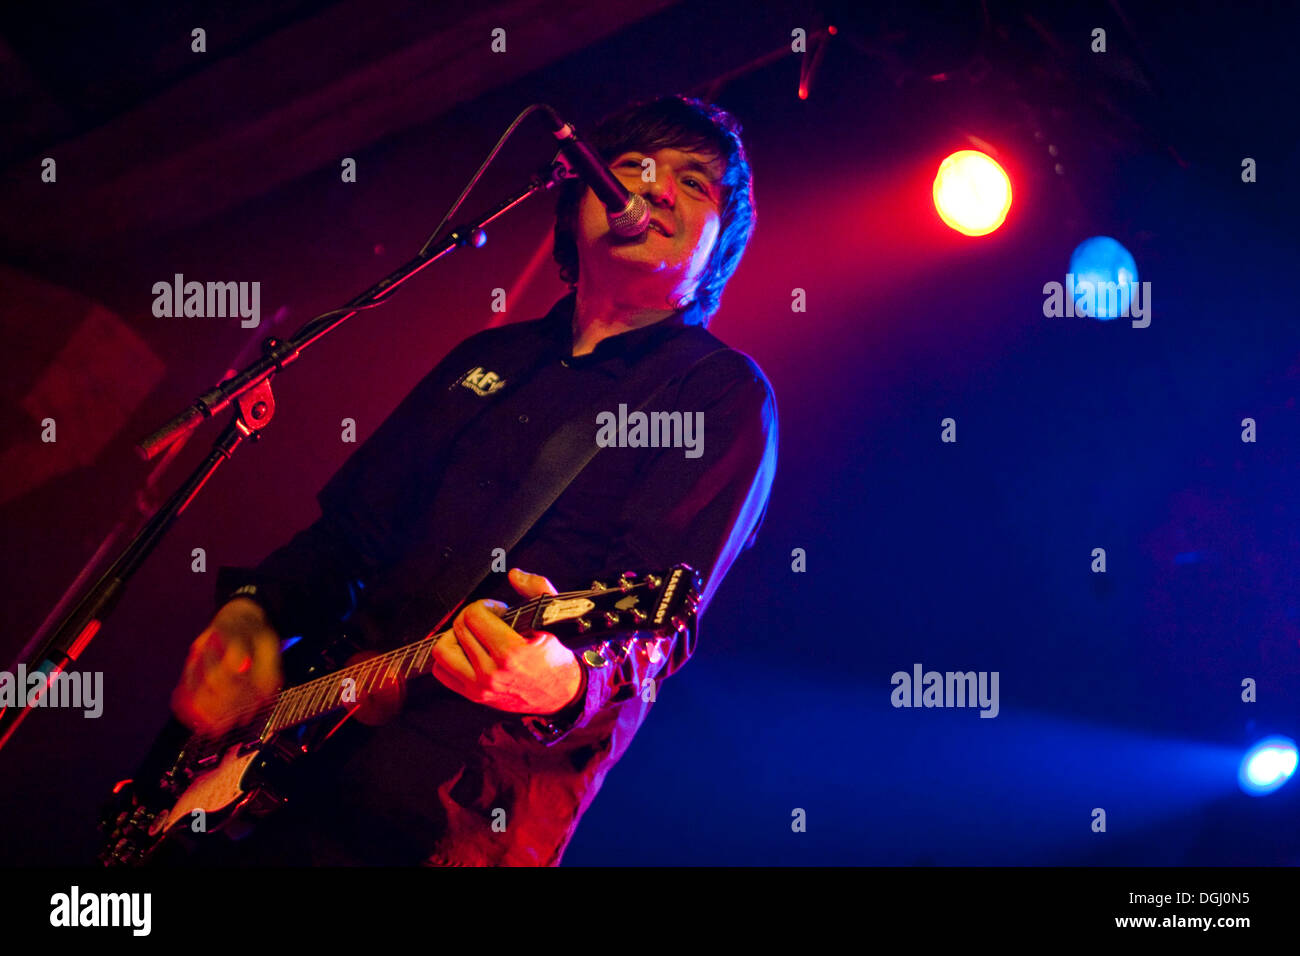 Rodrigo Gonzalez, guitarist and band member of Die Aerzte, here playing with the German punk band Abwaerts, live in the Schueuer - Stock Image